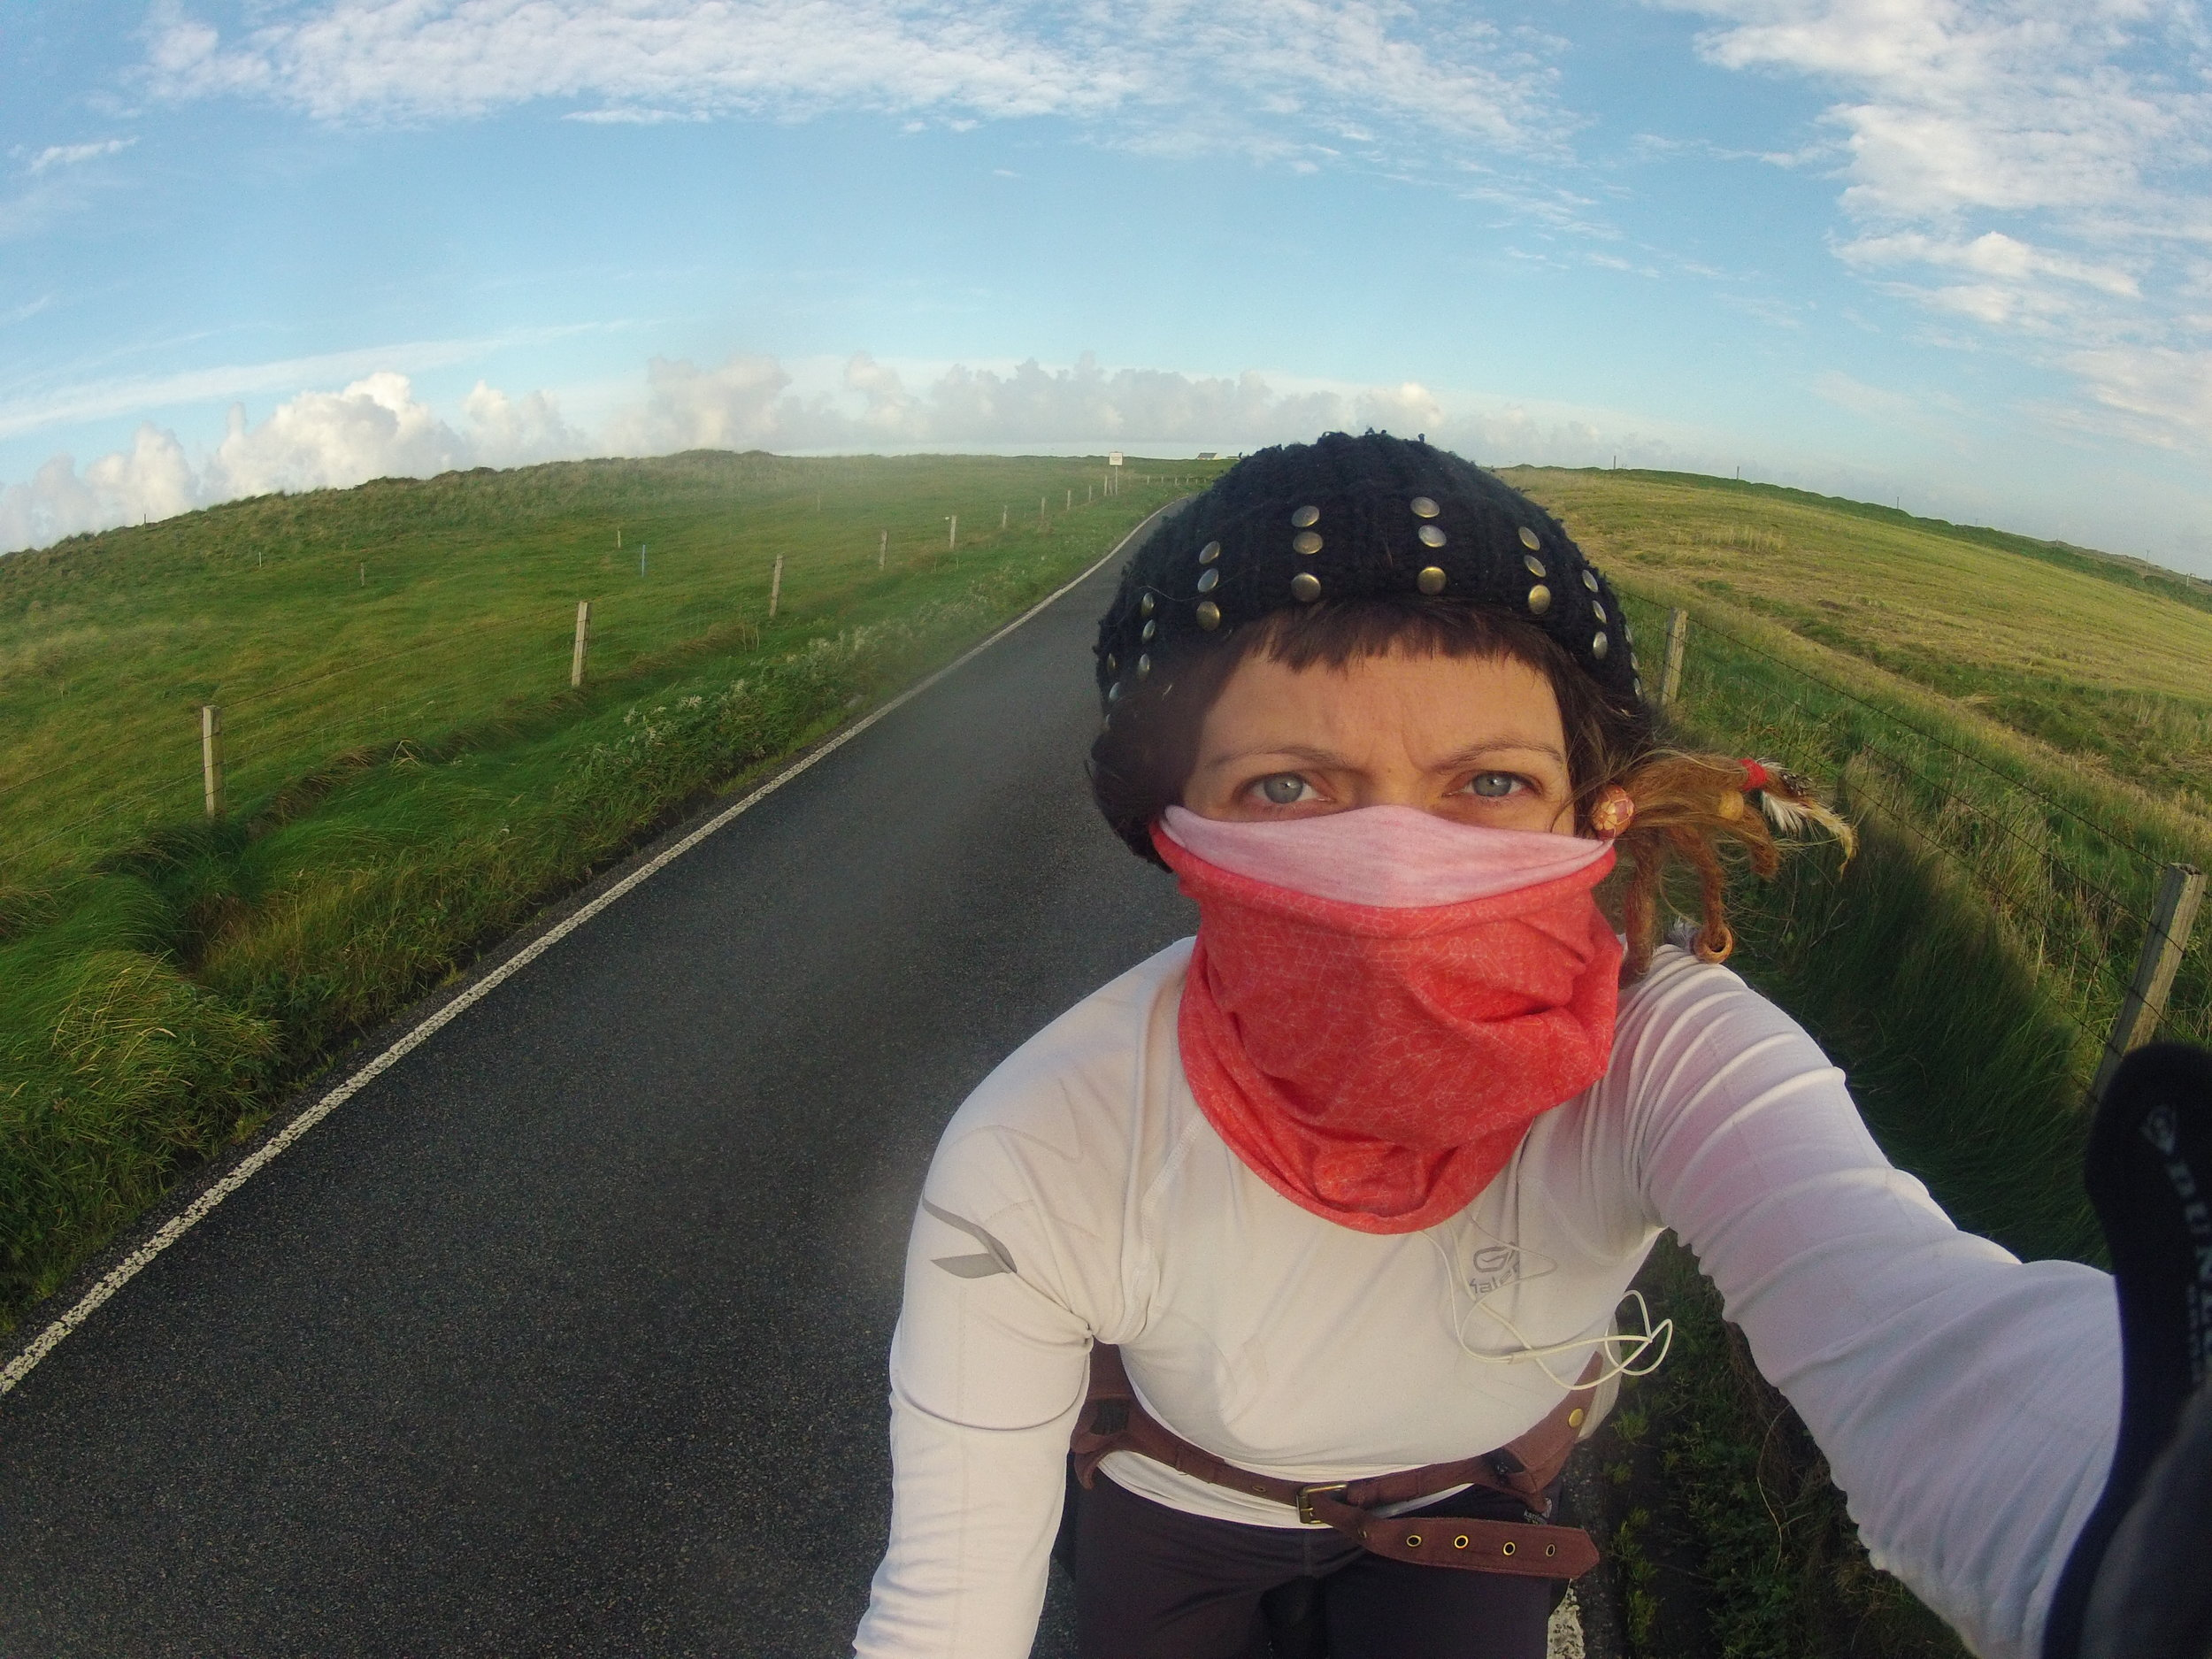 Solo Coast To Coast: Outer Hebrides - Cycling over 300km from the most northernly island to southern tip through the Outer Hebrides isles.